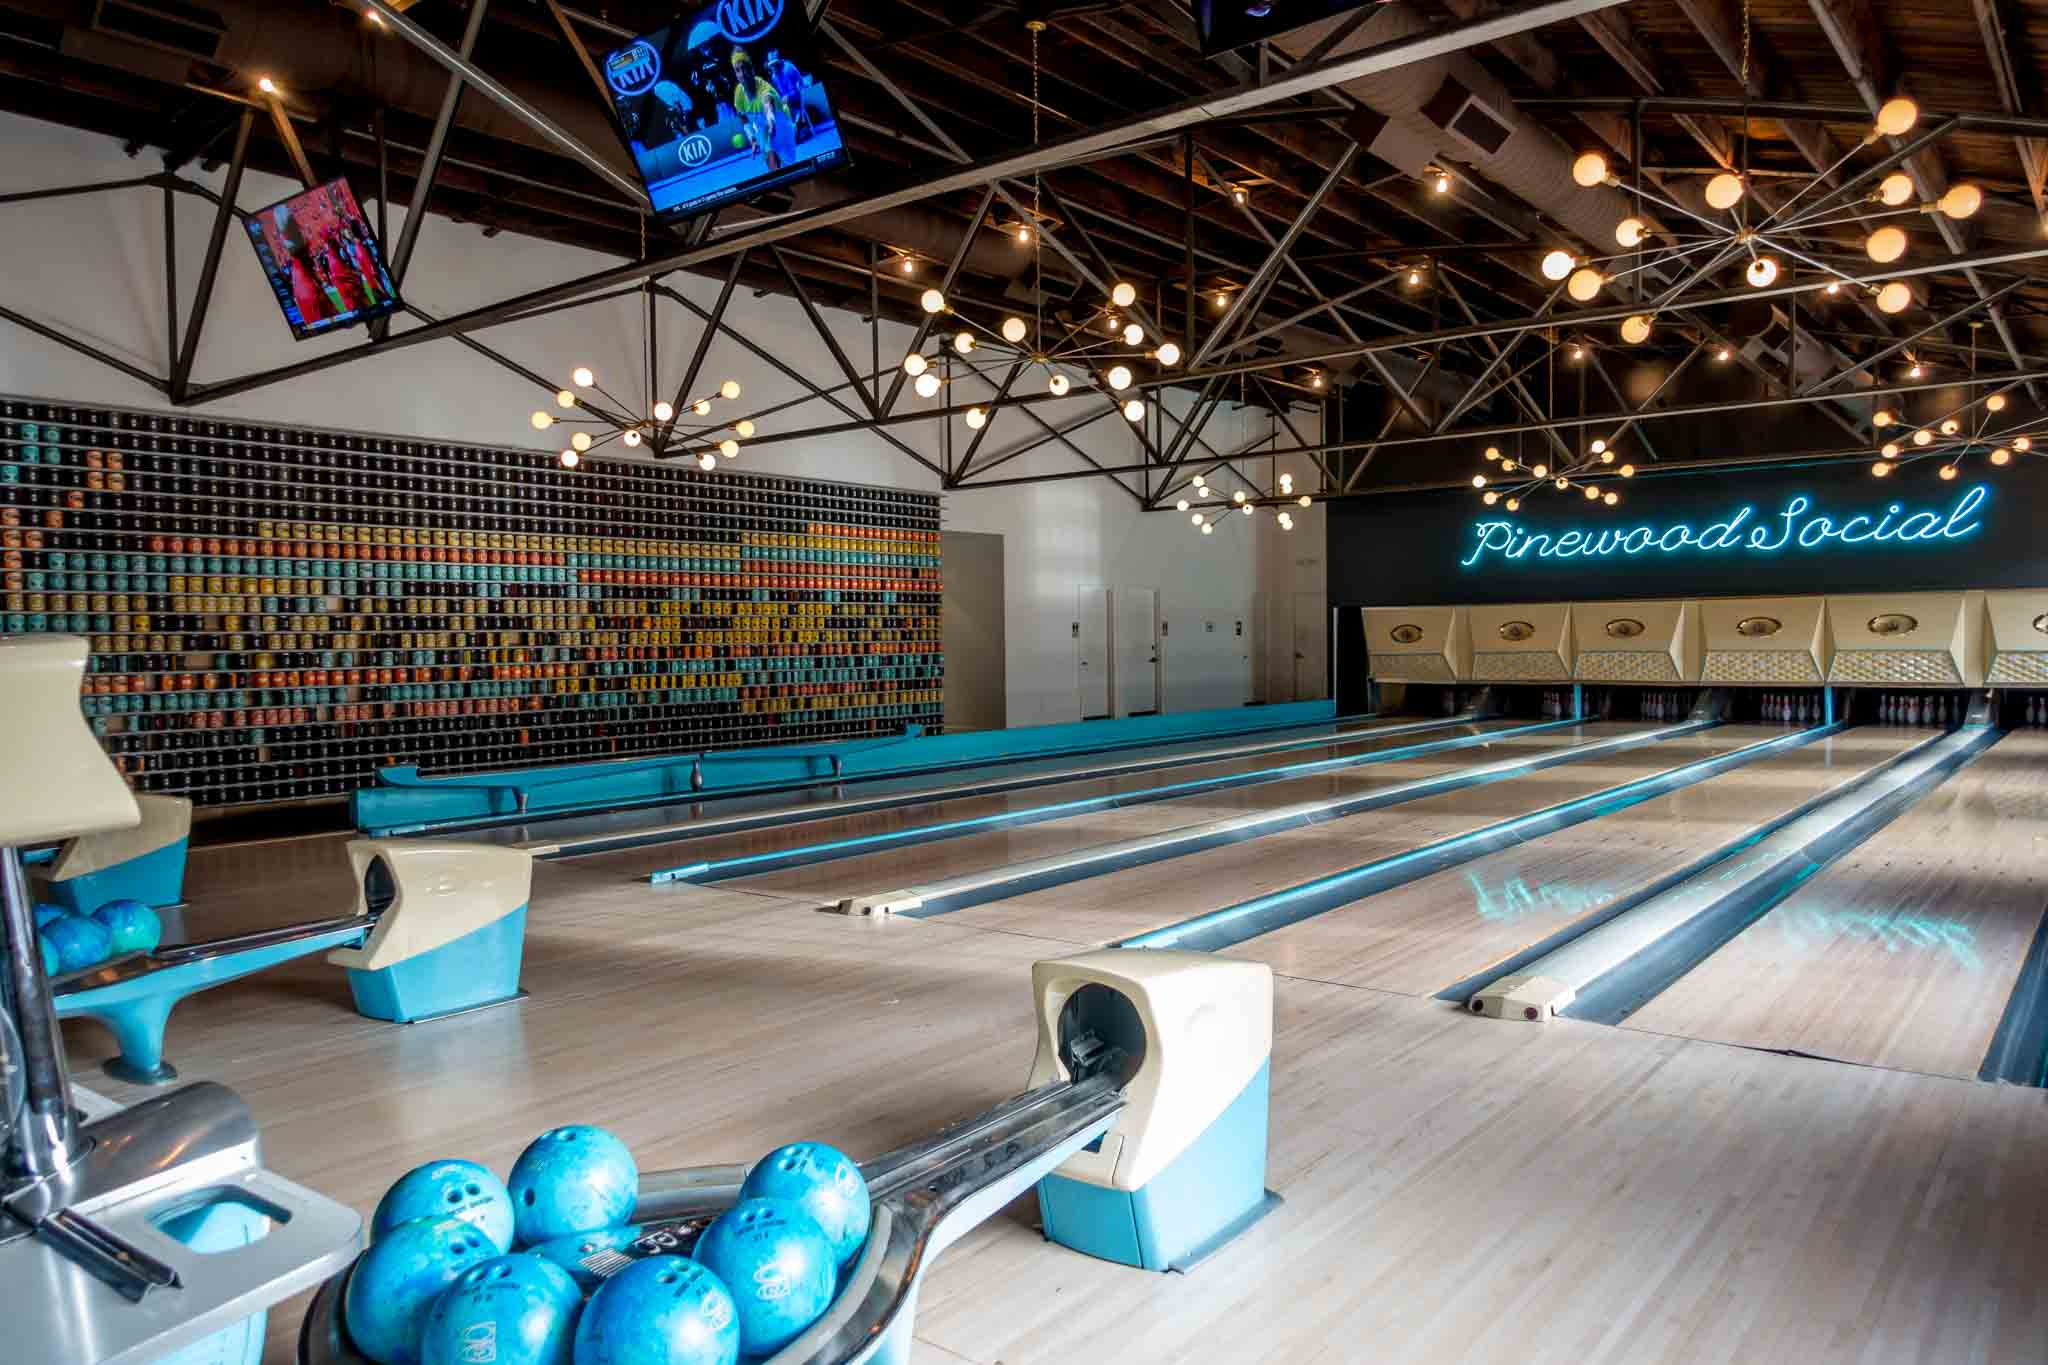 Blue bowling balls in a bowling alley with a sign for Pinewood Social